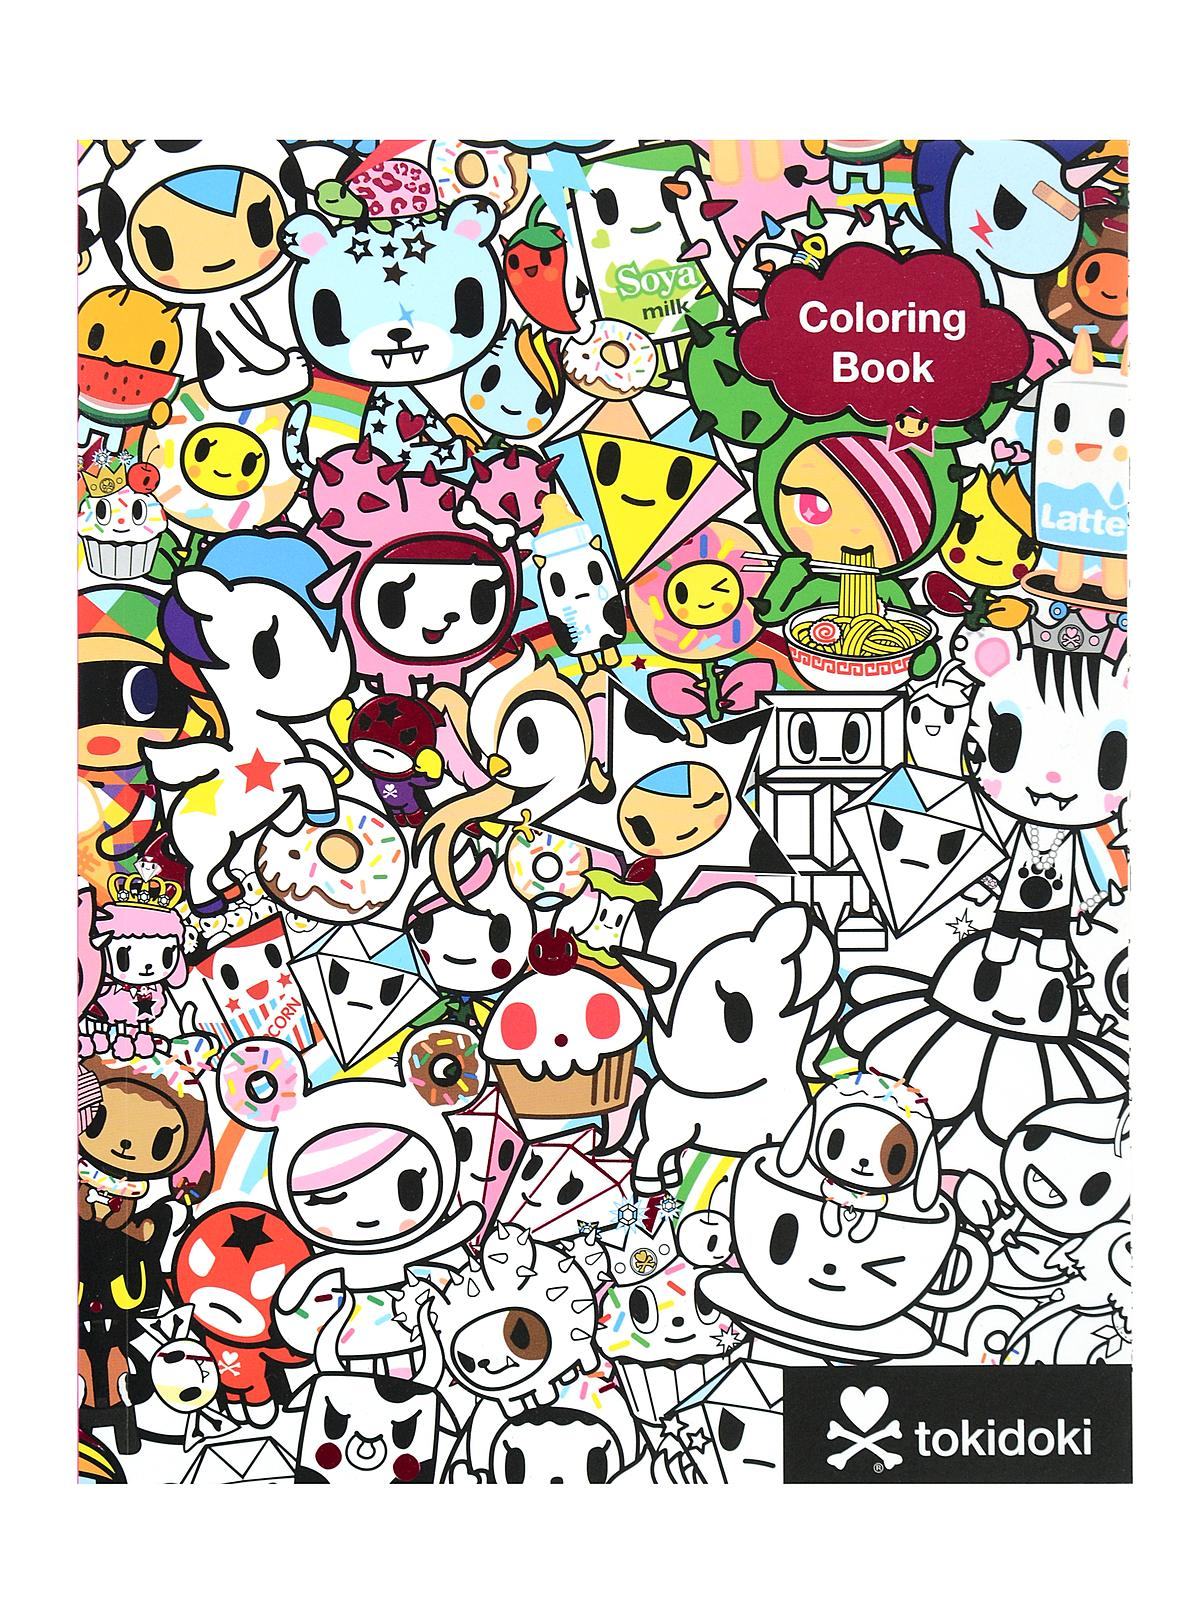 Tokidoki coloring book - e3f1d1f6595884c , Tokidoki-coloring-book-13708576 , Tokidoki coloring book , Array , 13708576 , Gift Ideas , 55418